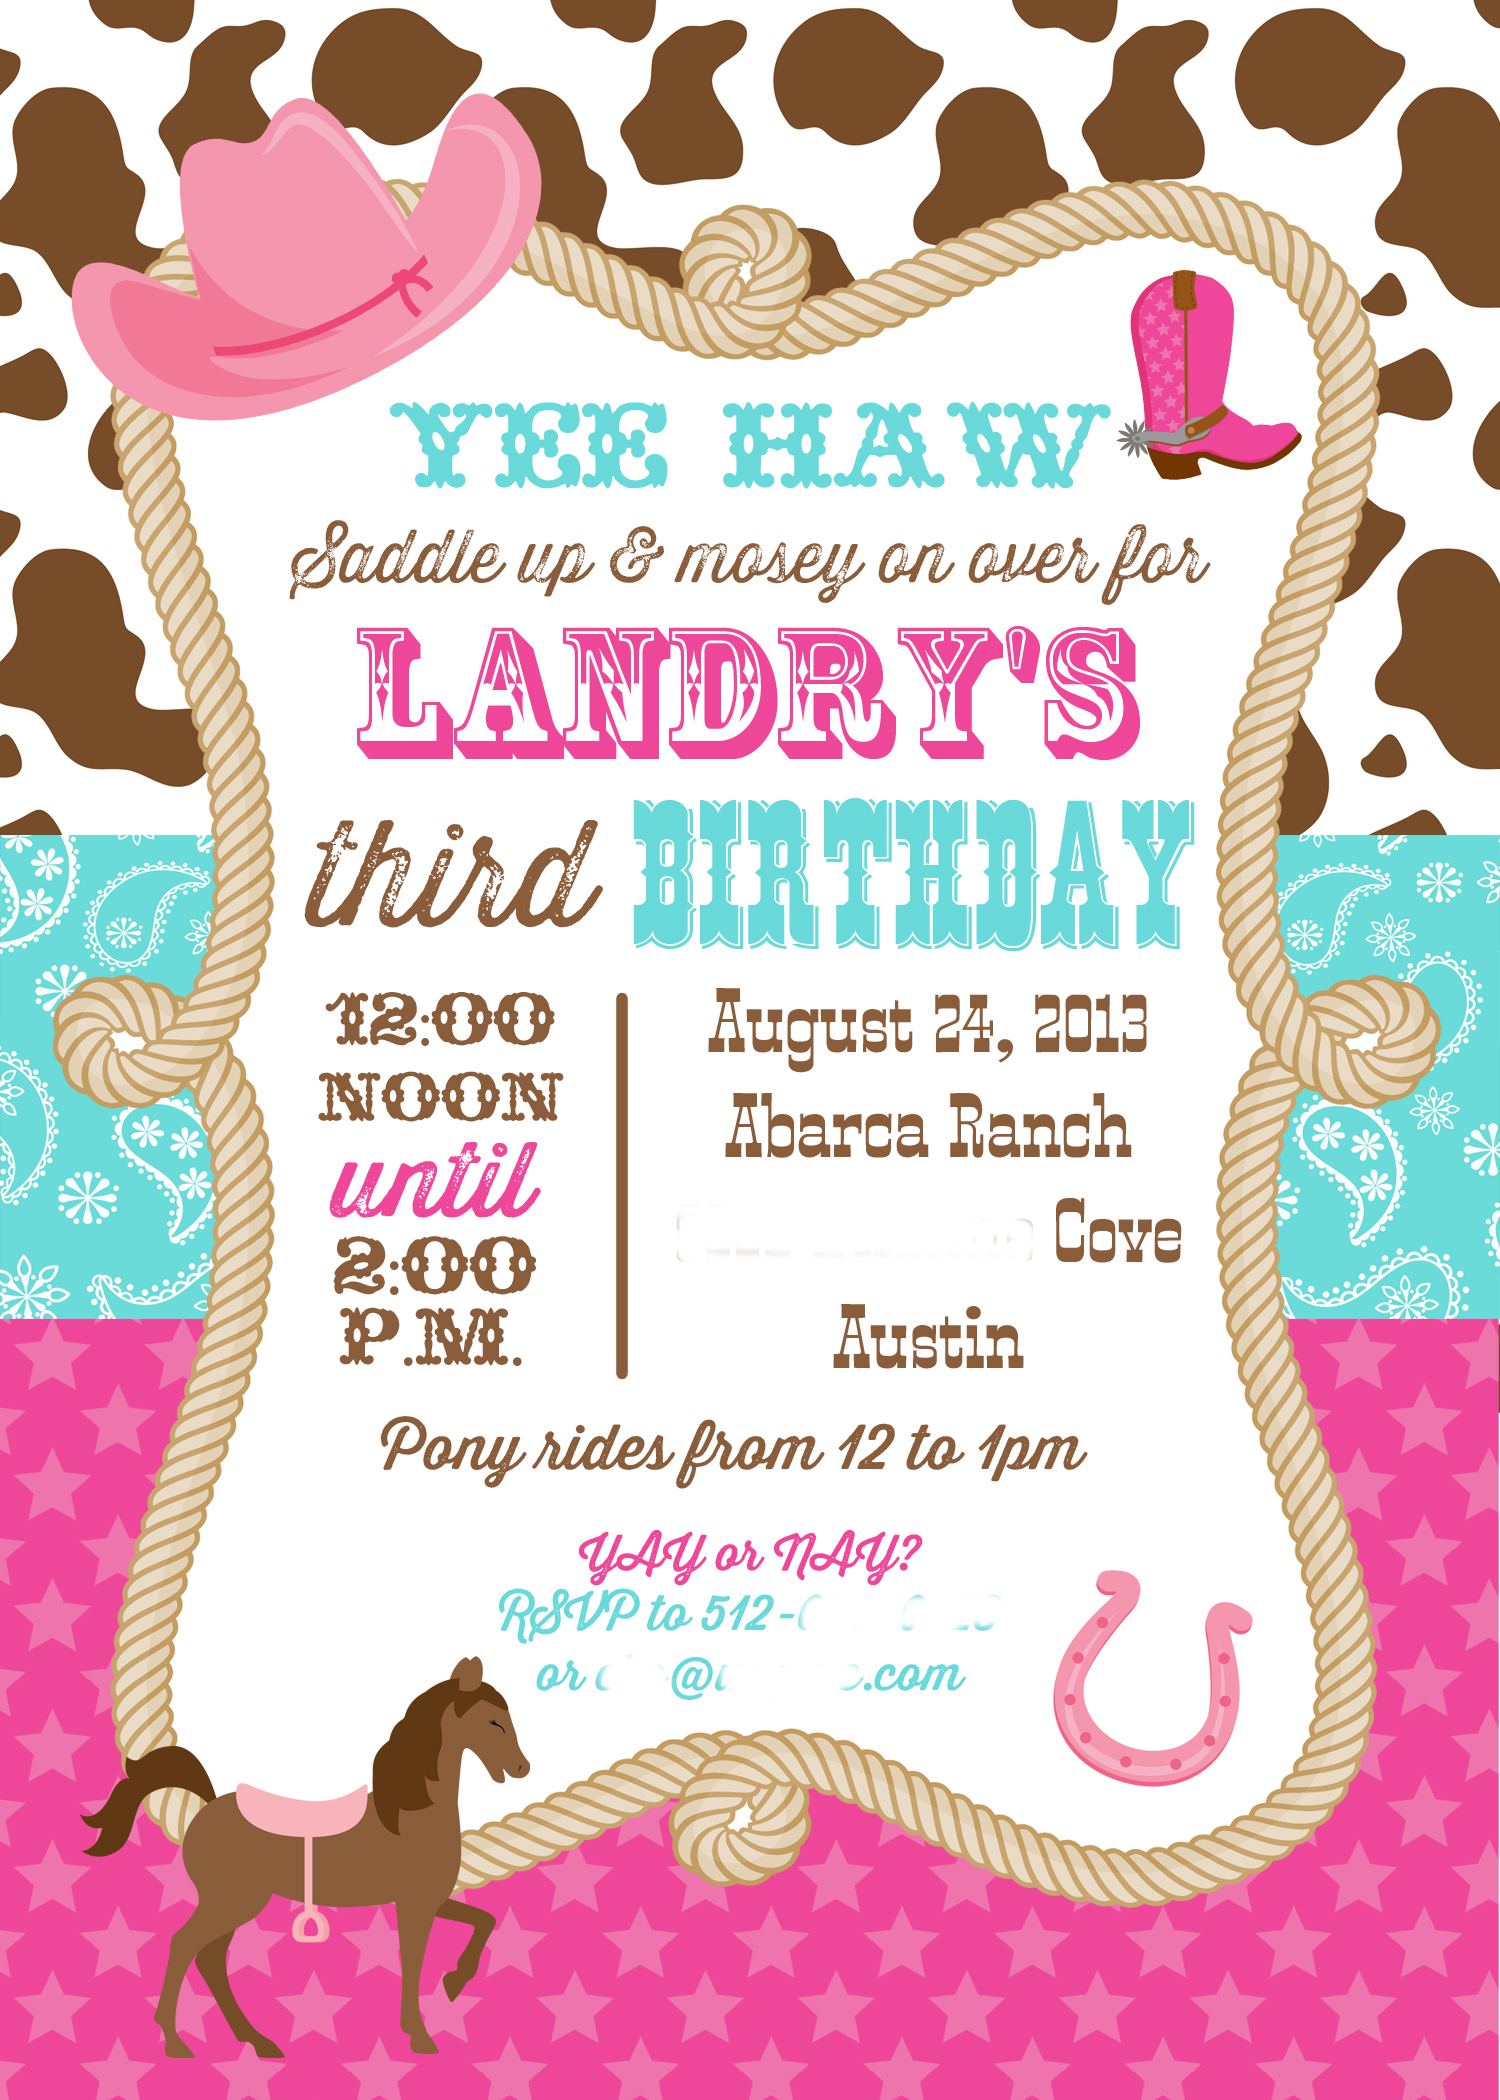 Landry's Cowgirl 3rd Birthday Party | There's No I in Clare